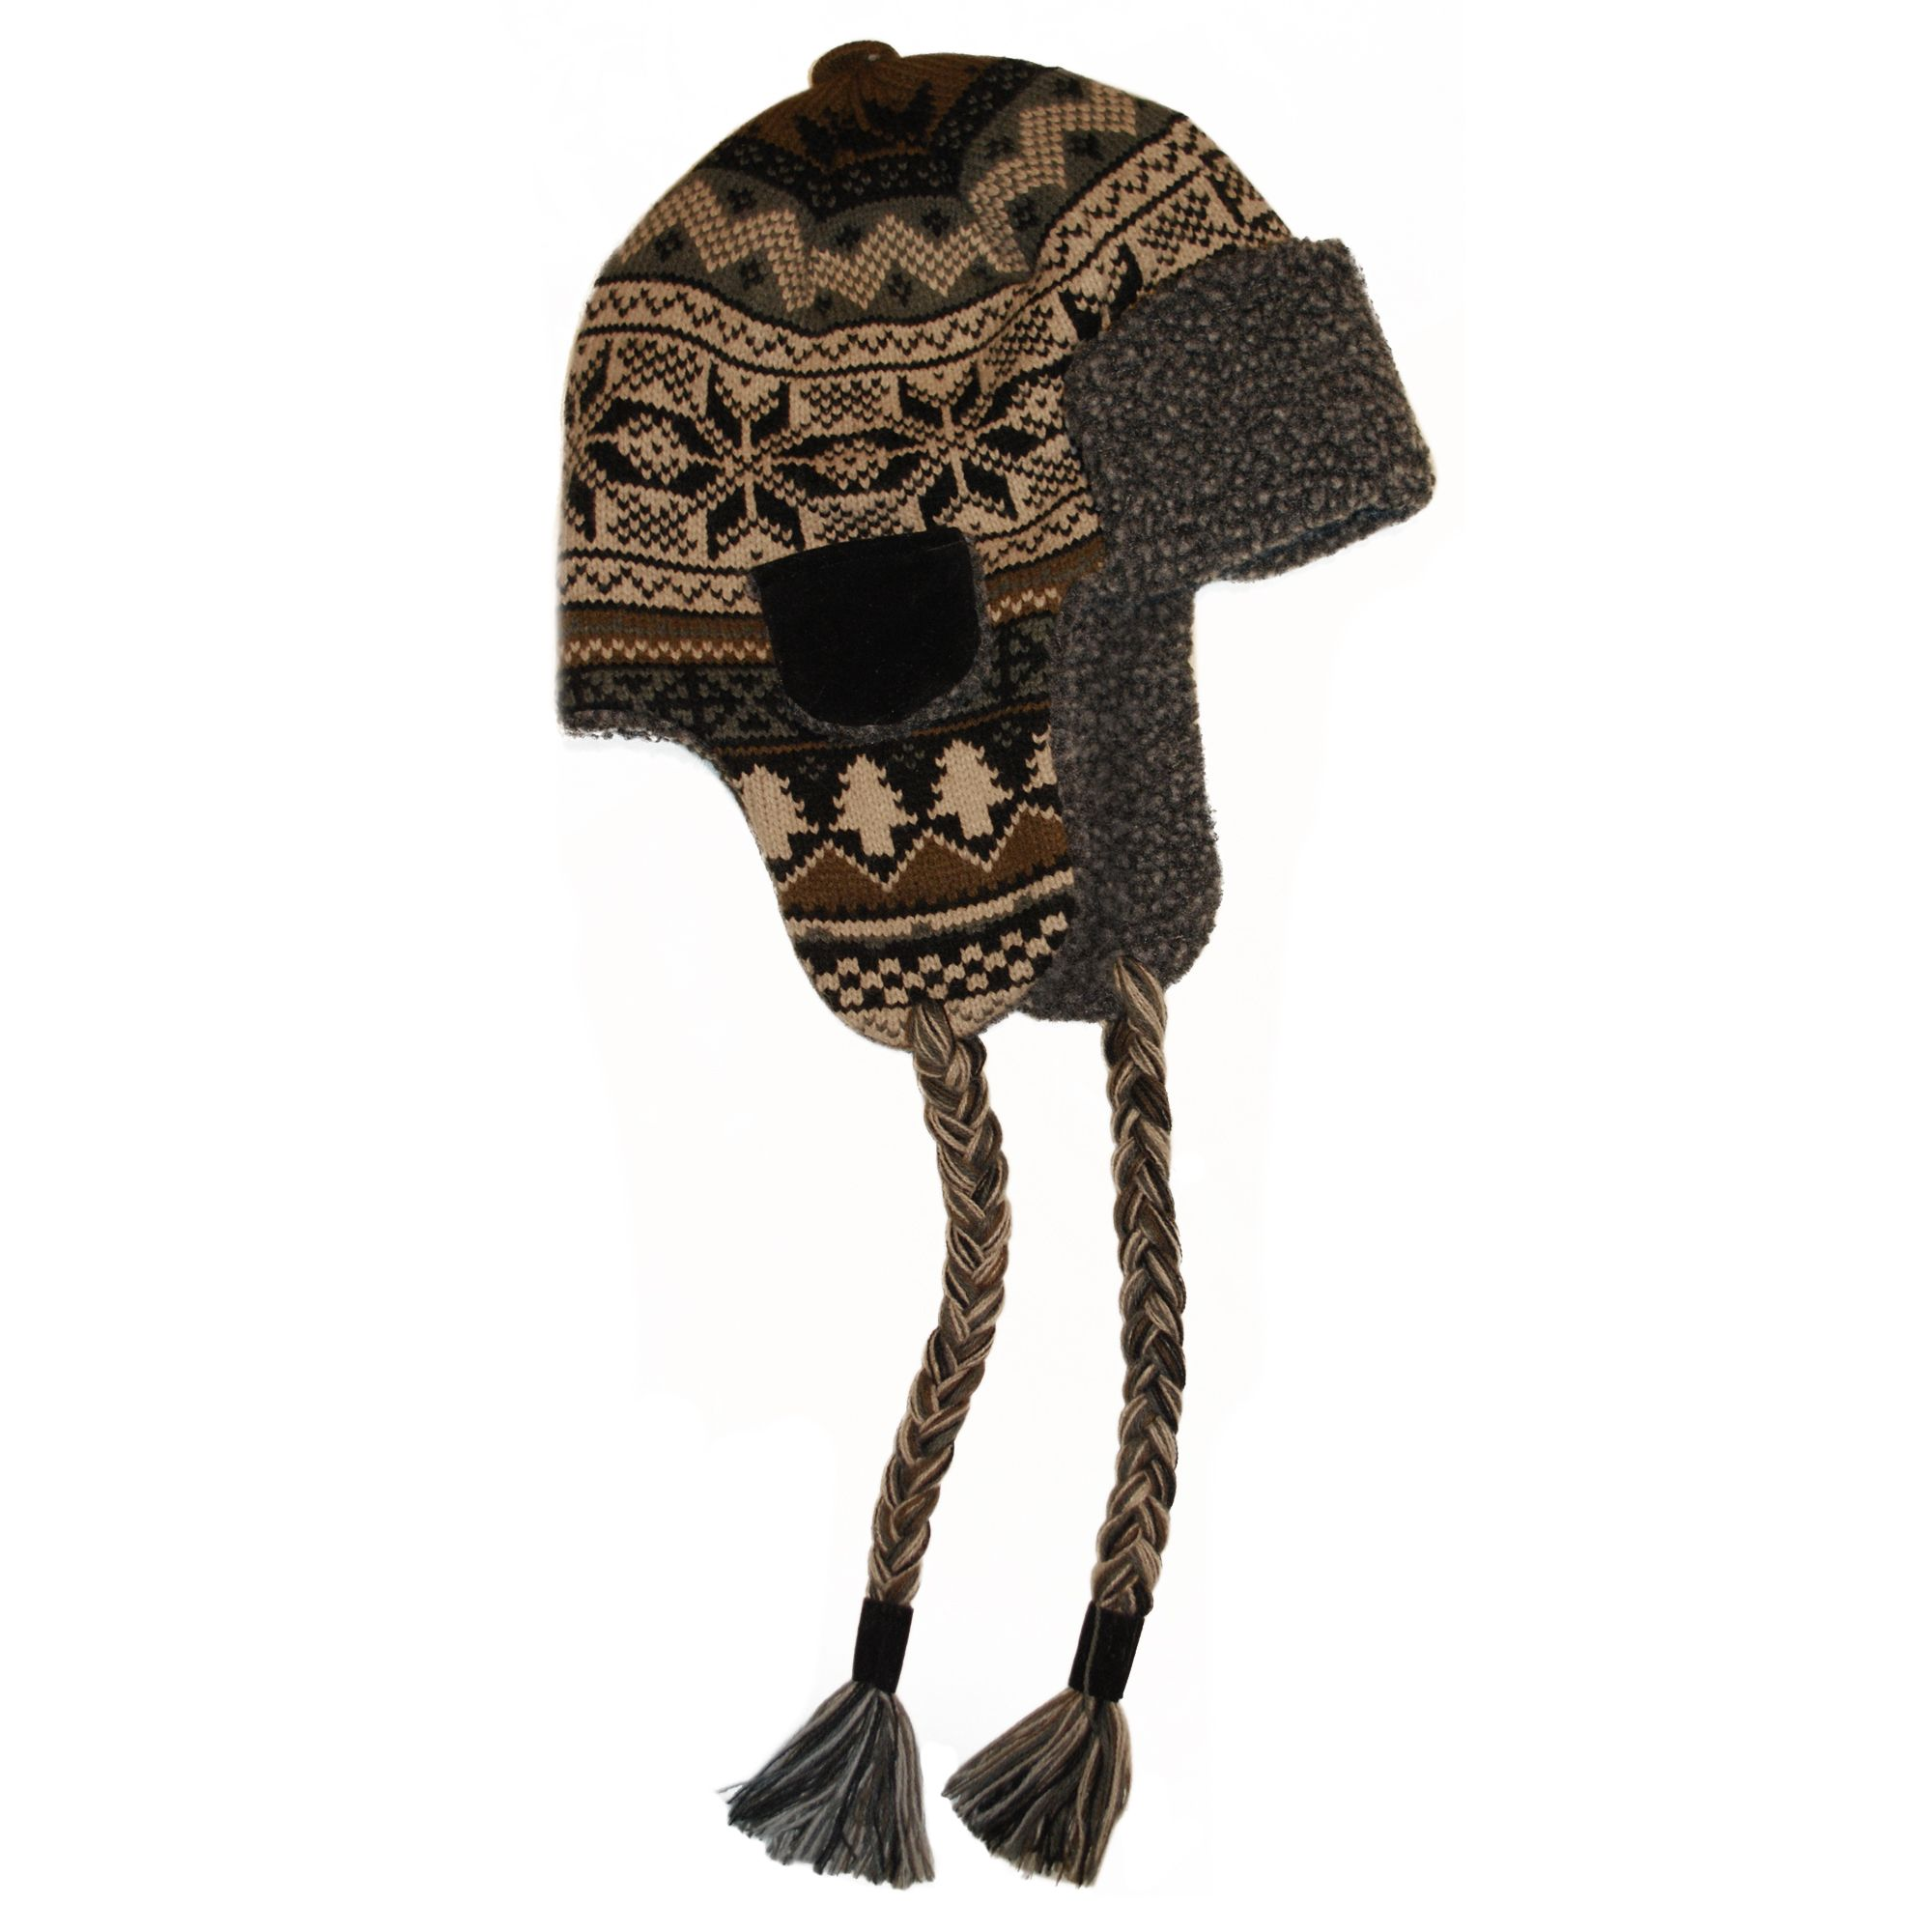 MUK LUKS® Traditional Nordic Knit Button Top Trapper Hat with Sherpa Lining - Neutral